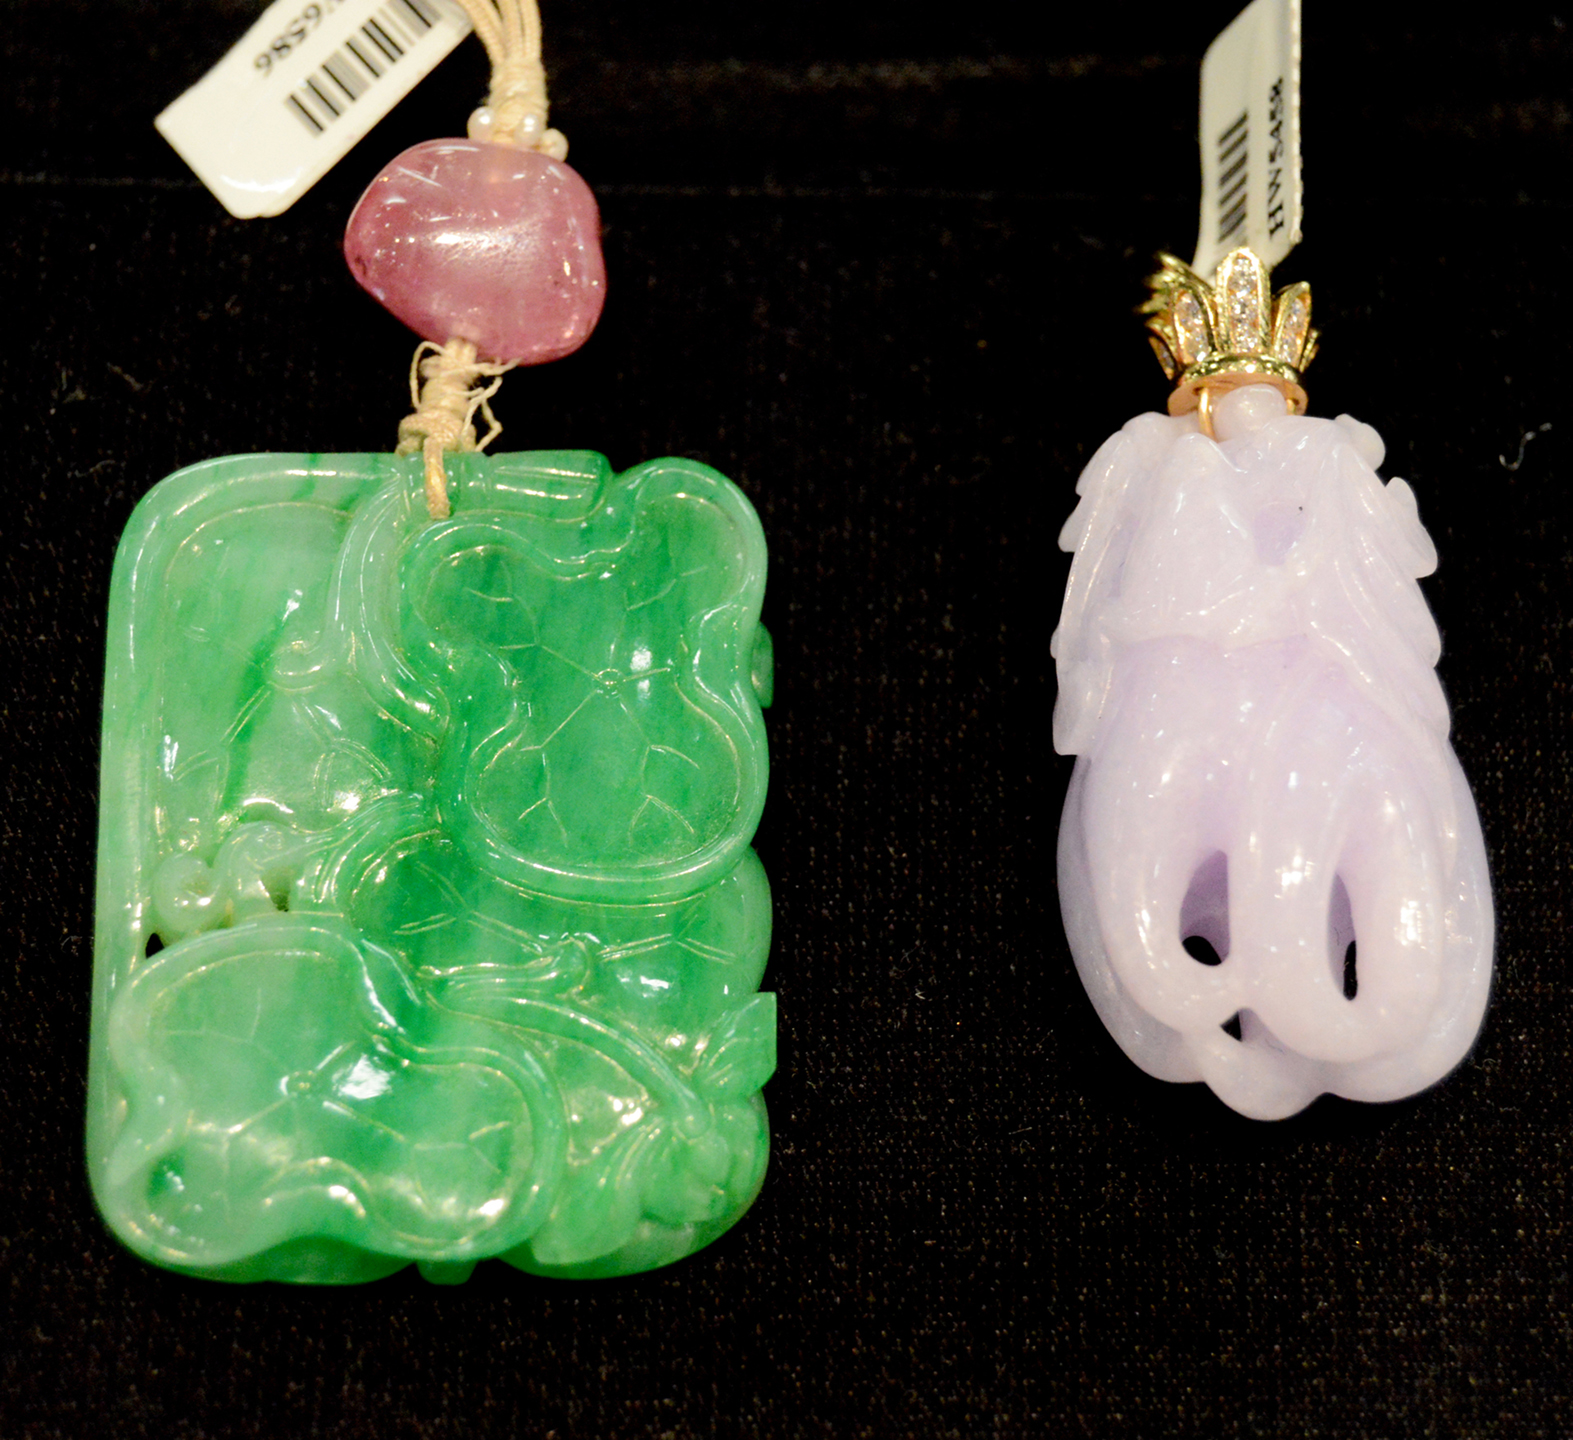 Hays Worthington, New York City, offered this antique green jade pendant<br>(shown at left) with tourmaline and a lavender jade citron pendant,<br>both Chinese and circa 1800s.